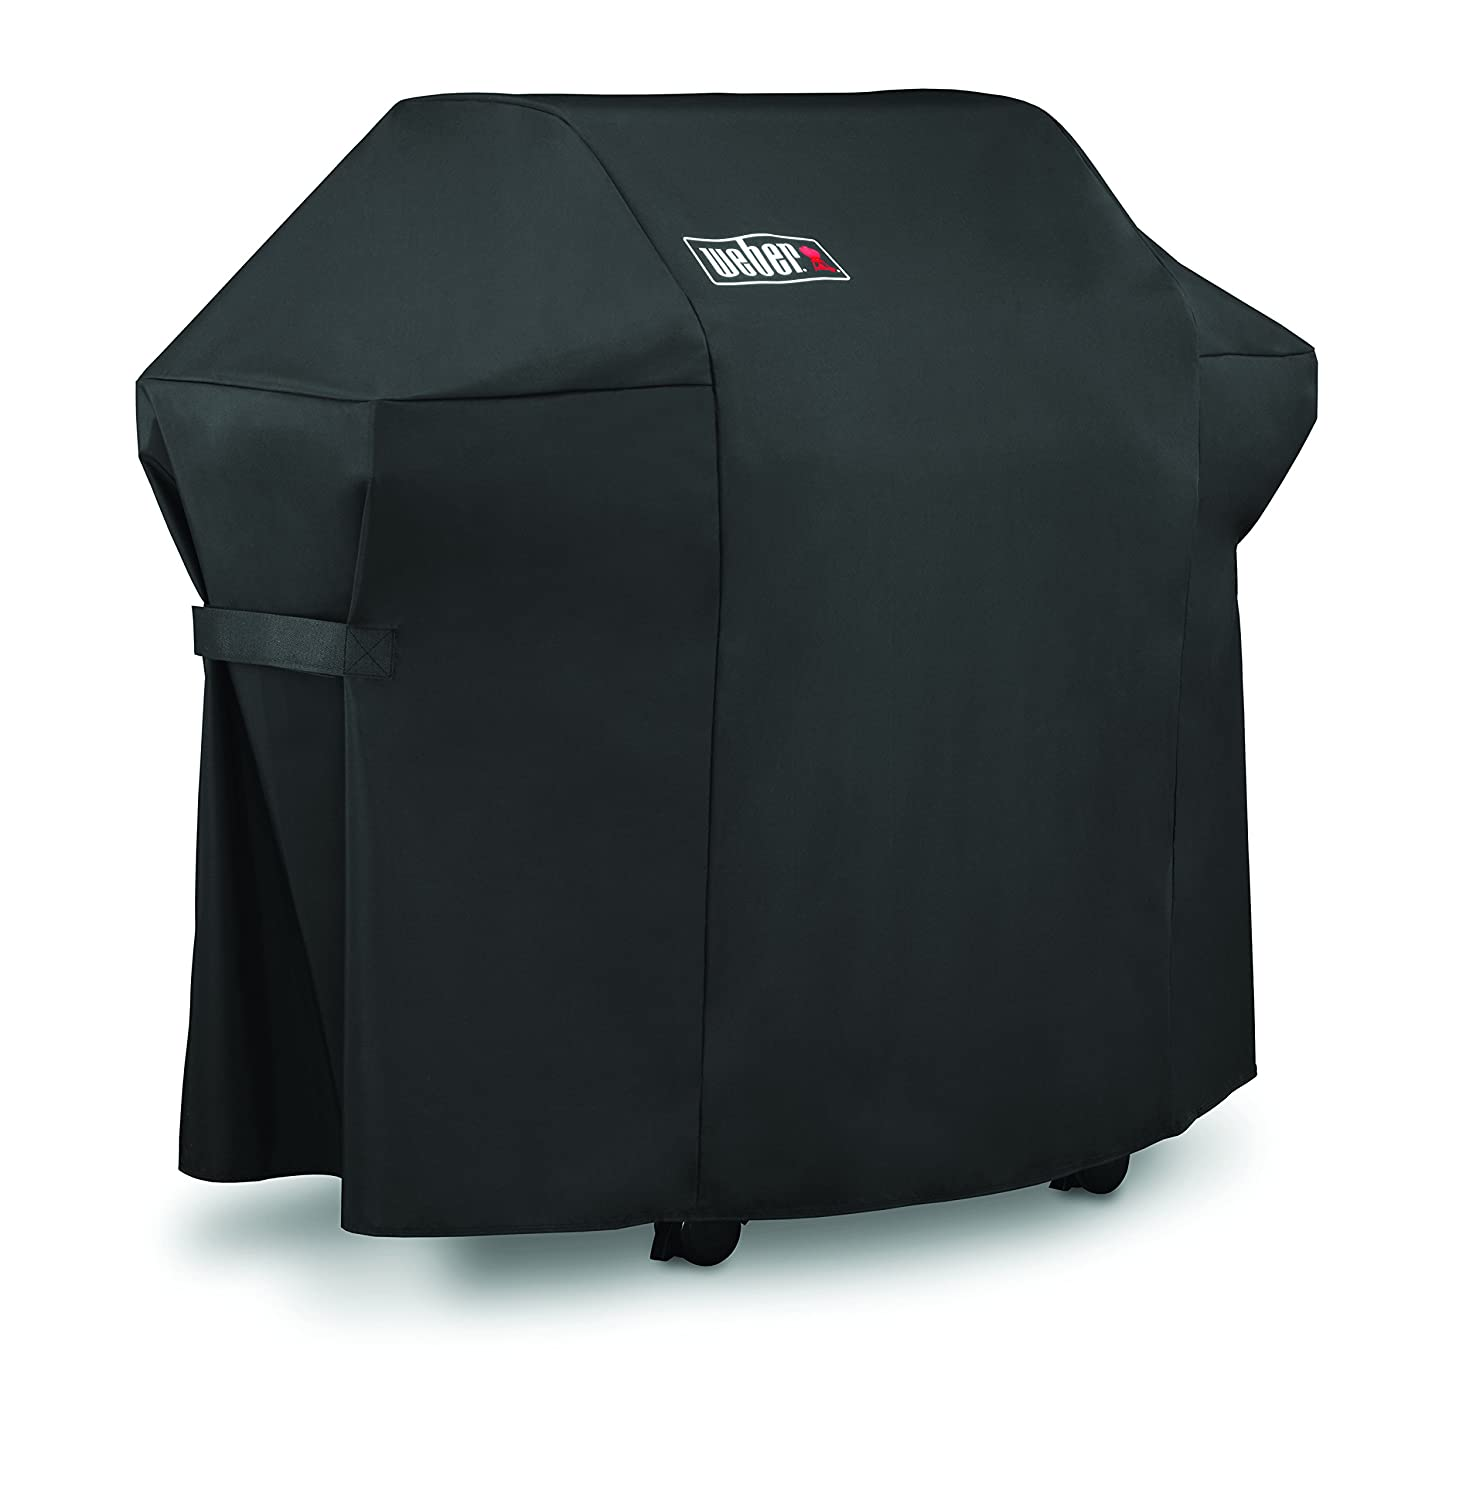 Amazon Weber 7106 Grill Cover for Spirit 220 and 300 Series